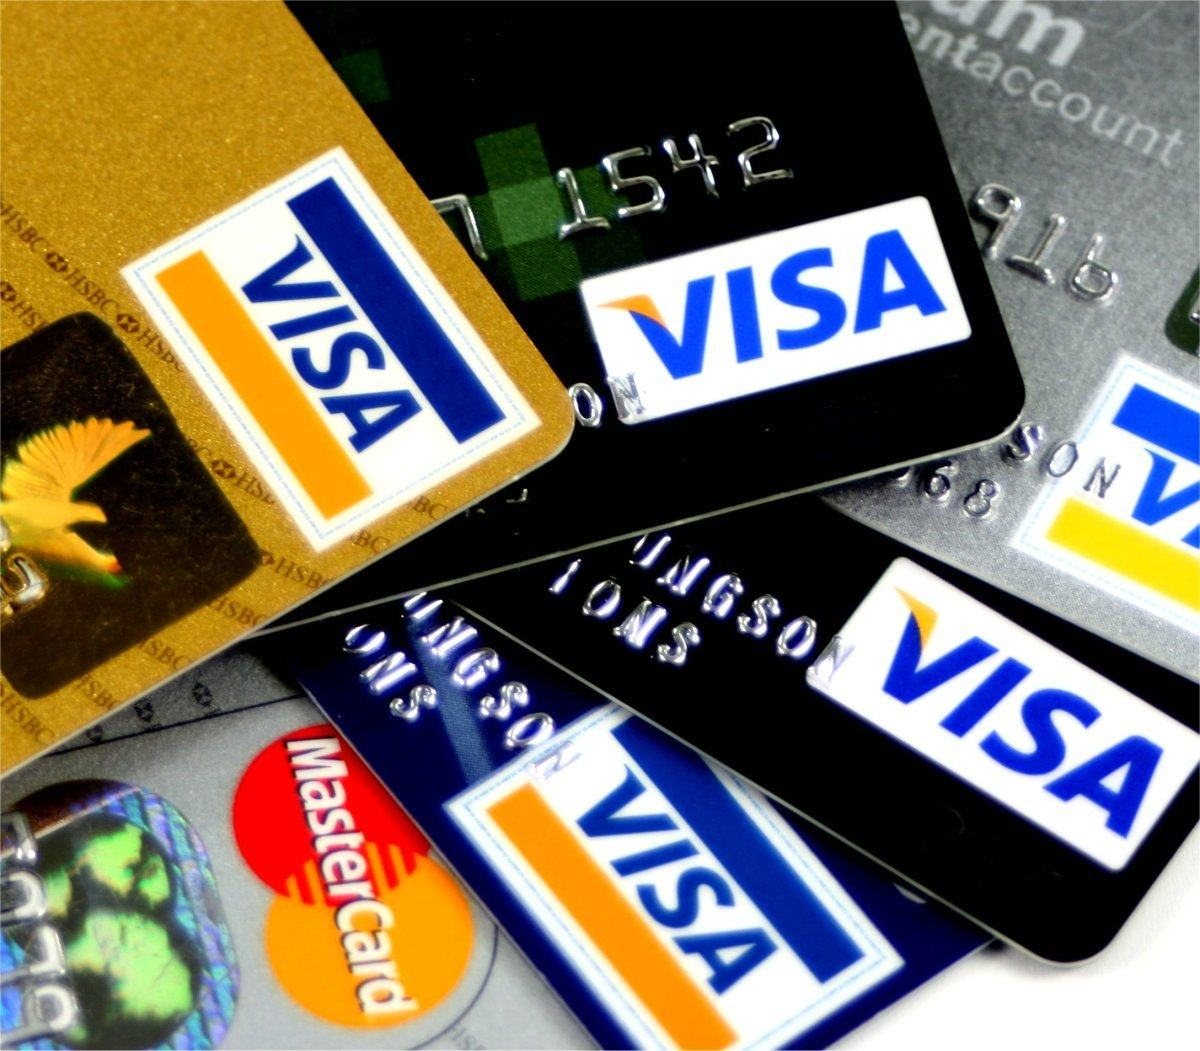 Images of credit cards which are toxic towards you long-term ability to save and make money.